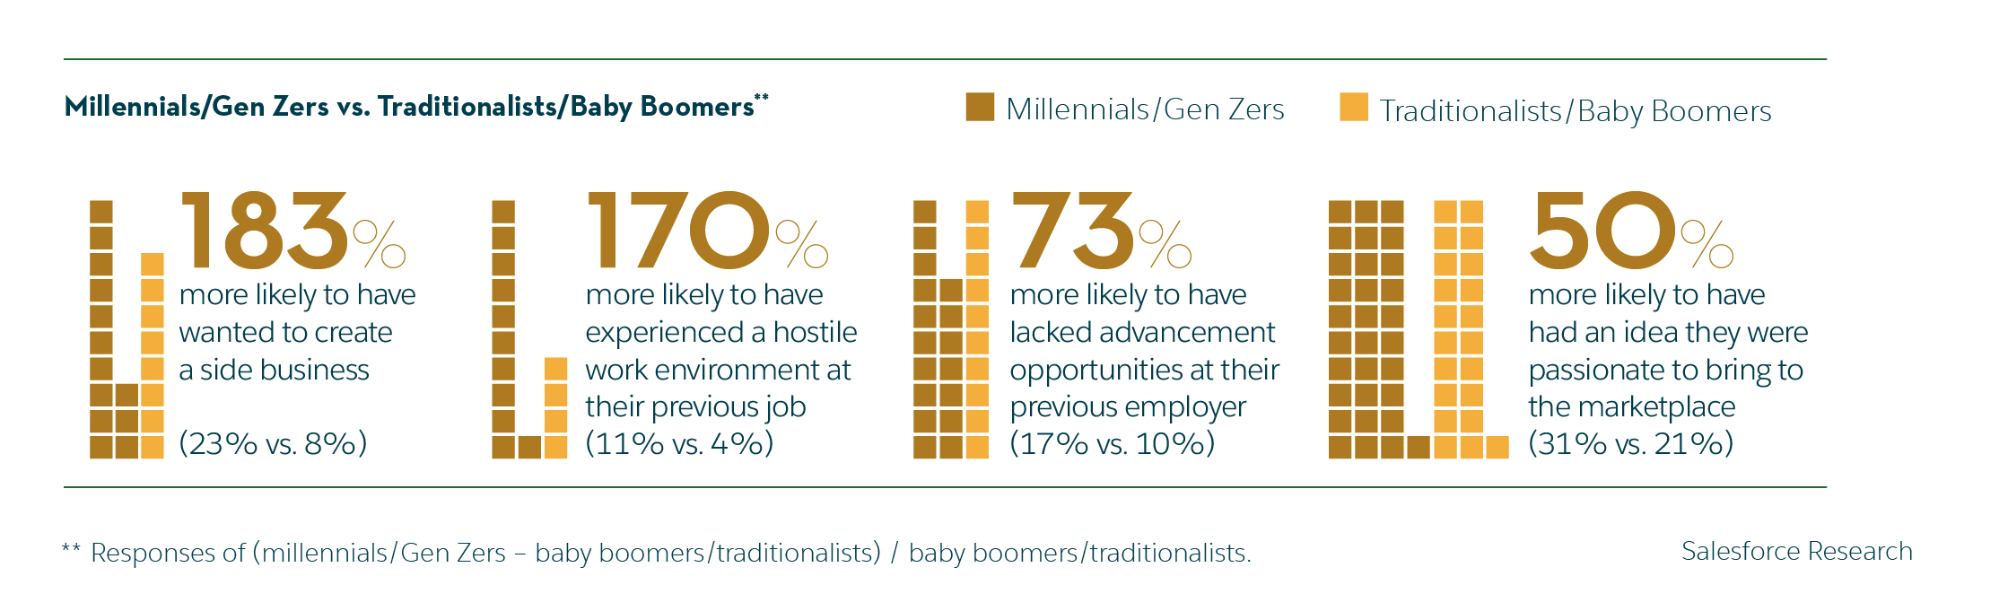 Five Small Business Statistics for 2019: Entrepreneurial mindset responses across generations